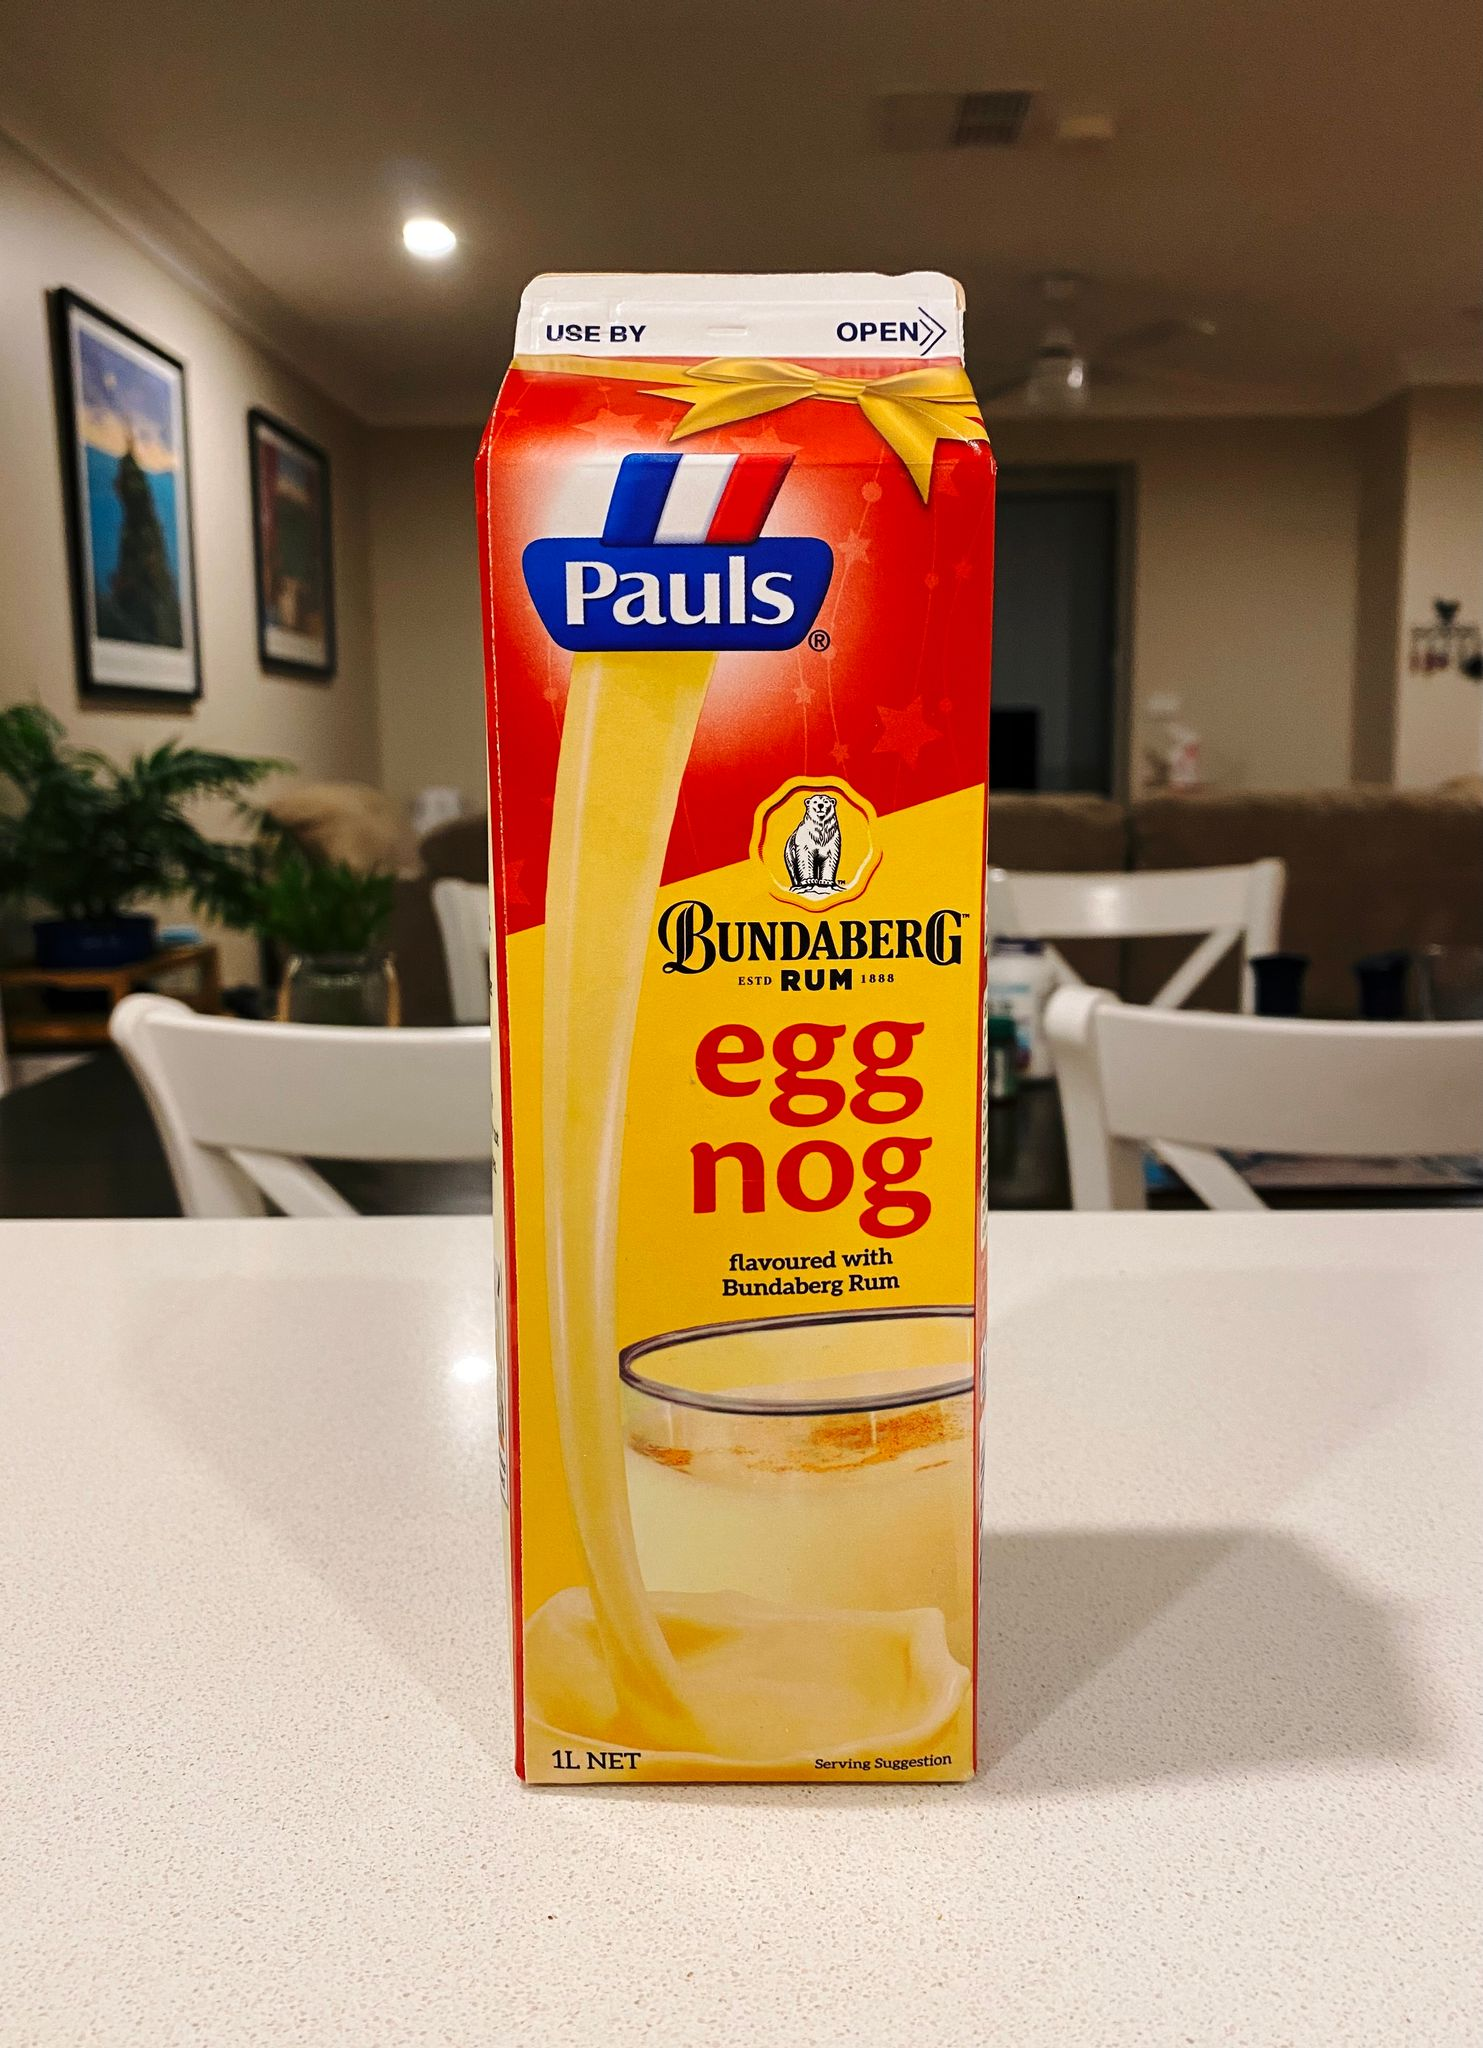 A photo of a carton of Paul's brand egg nog that comes flavoured with Bundaberg rum.